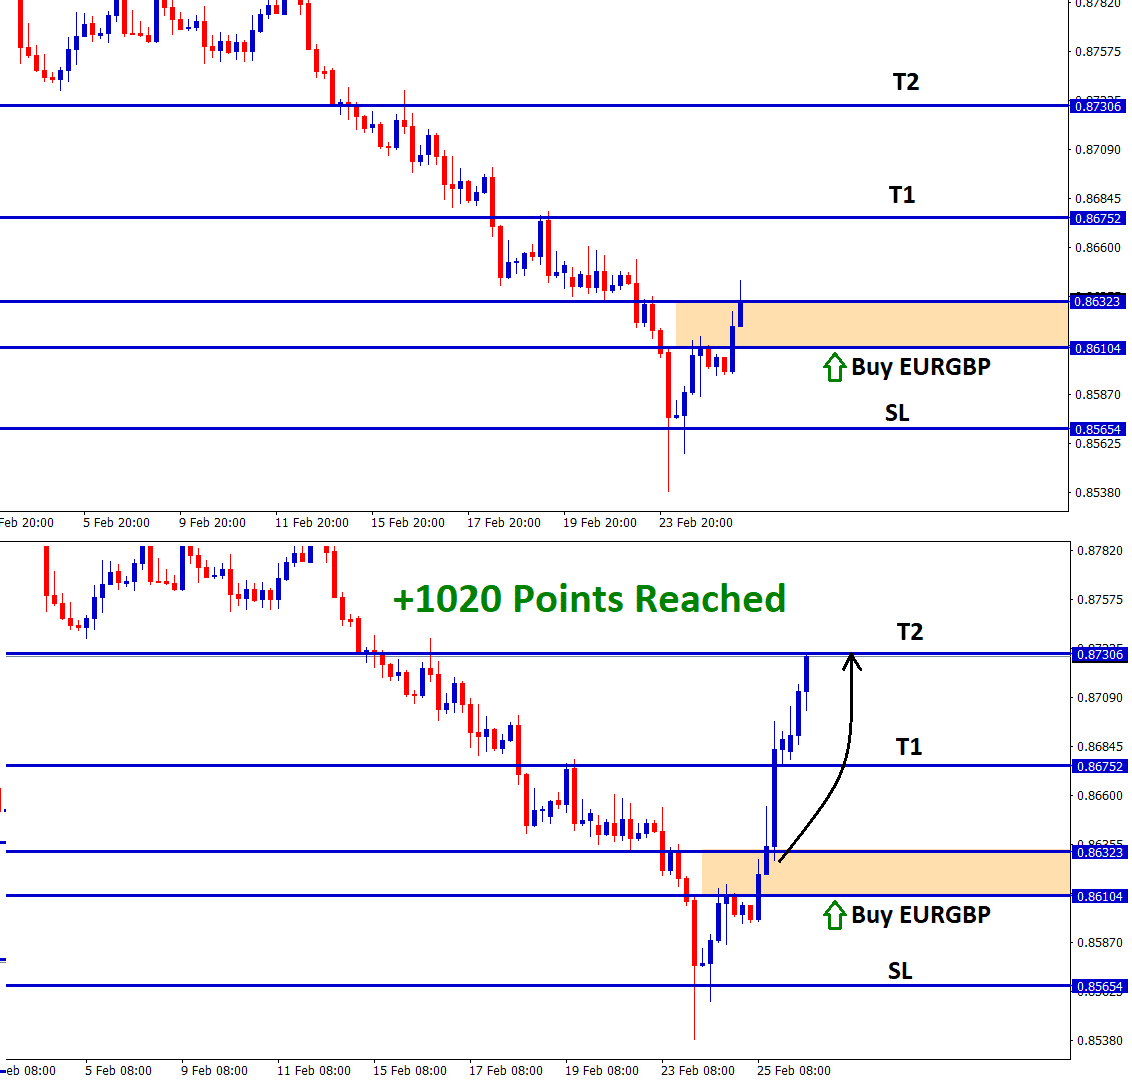 1020 points made in eurgbp buy signal